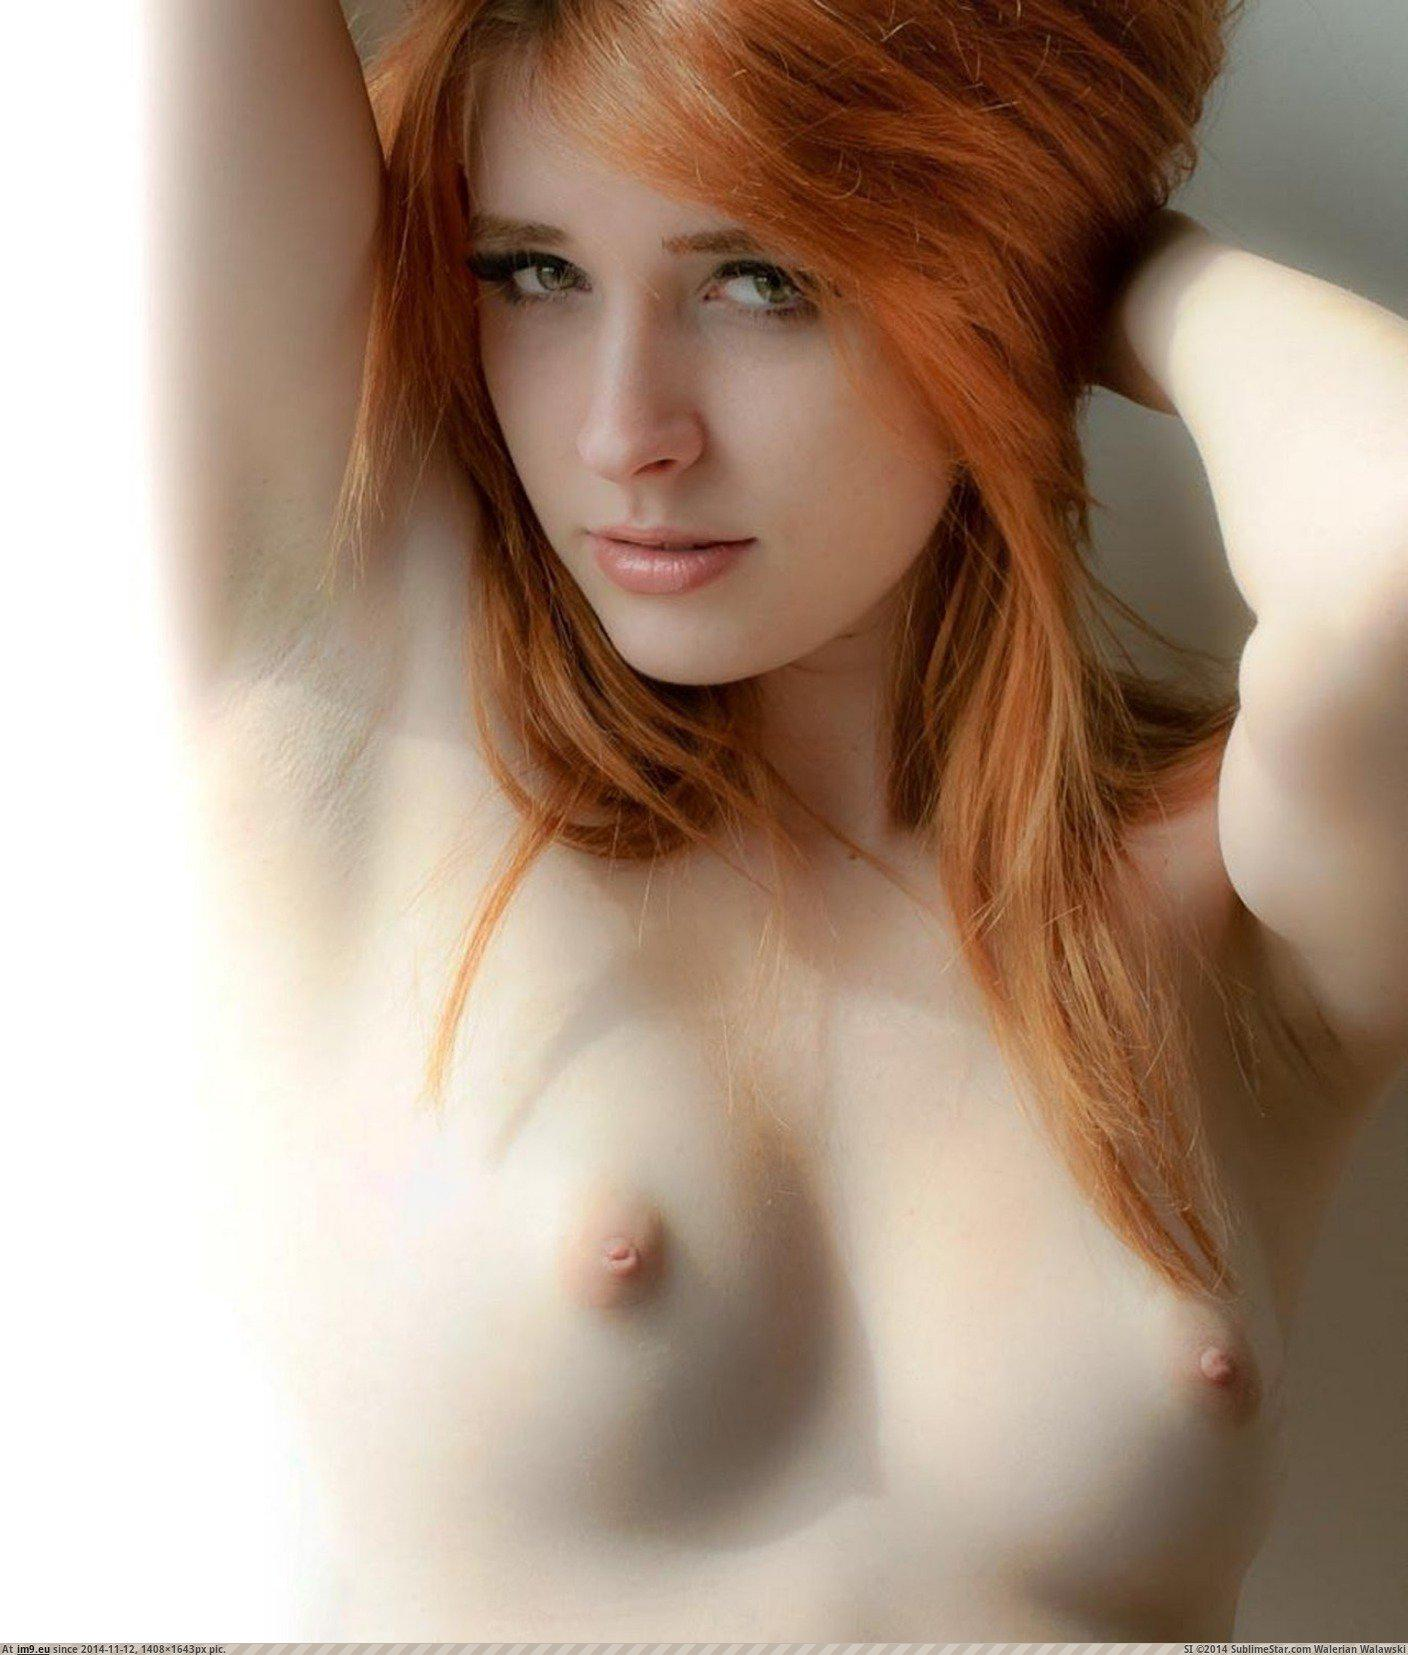 fuck-with-pale-redhead-galleries-video-naked-older